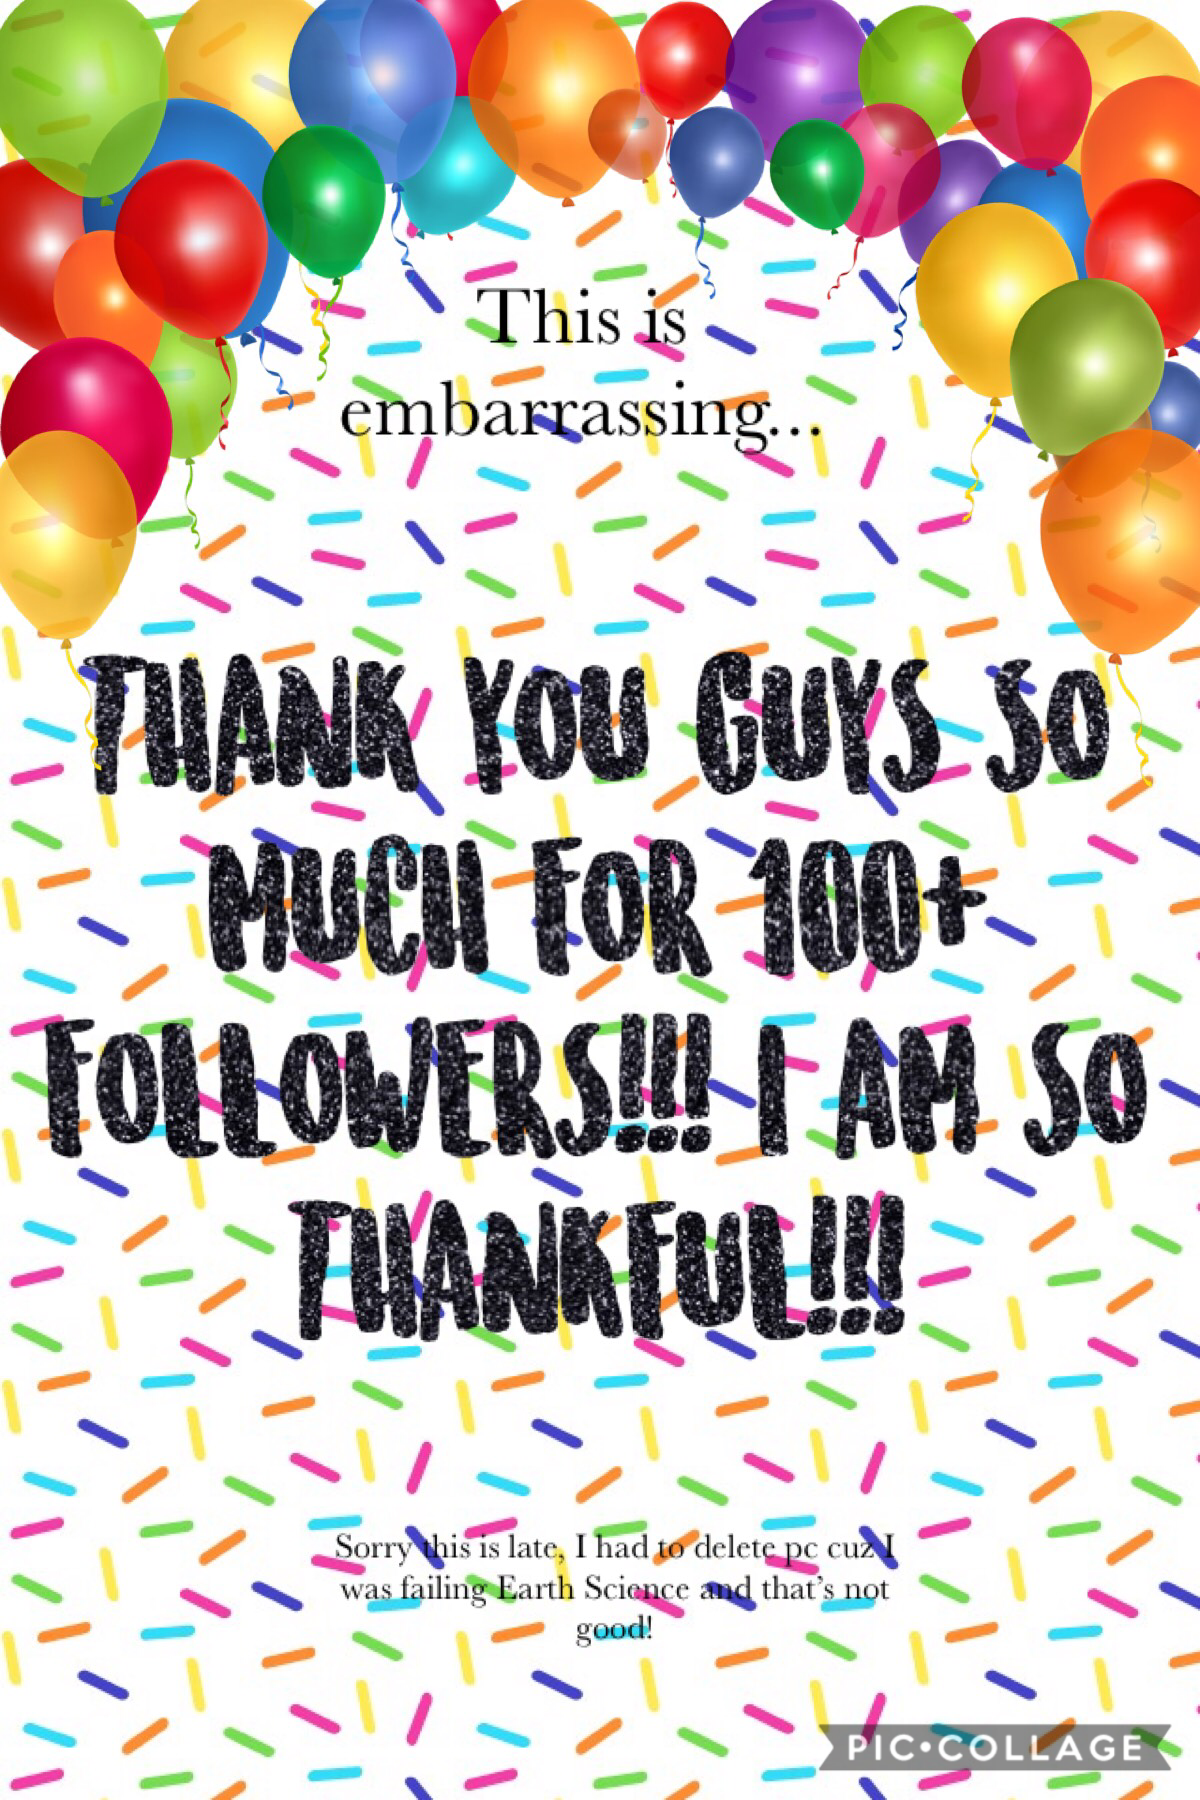 tapitty tapitty!            THANK YOU GUYS SO MUCH! I am so thankful for everyone who followed me especially those who have supported me from the start! Give yourselves a pat on the back (or high five but that's kinda sad 😂)   QOTD: What's your fav color?